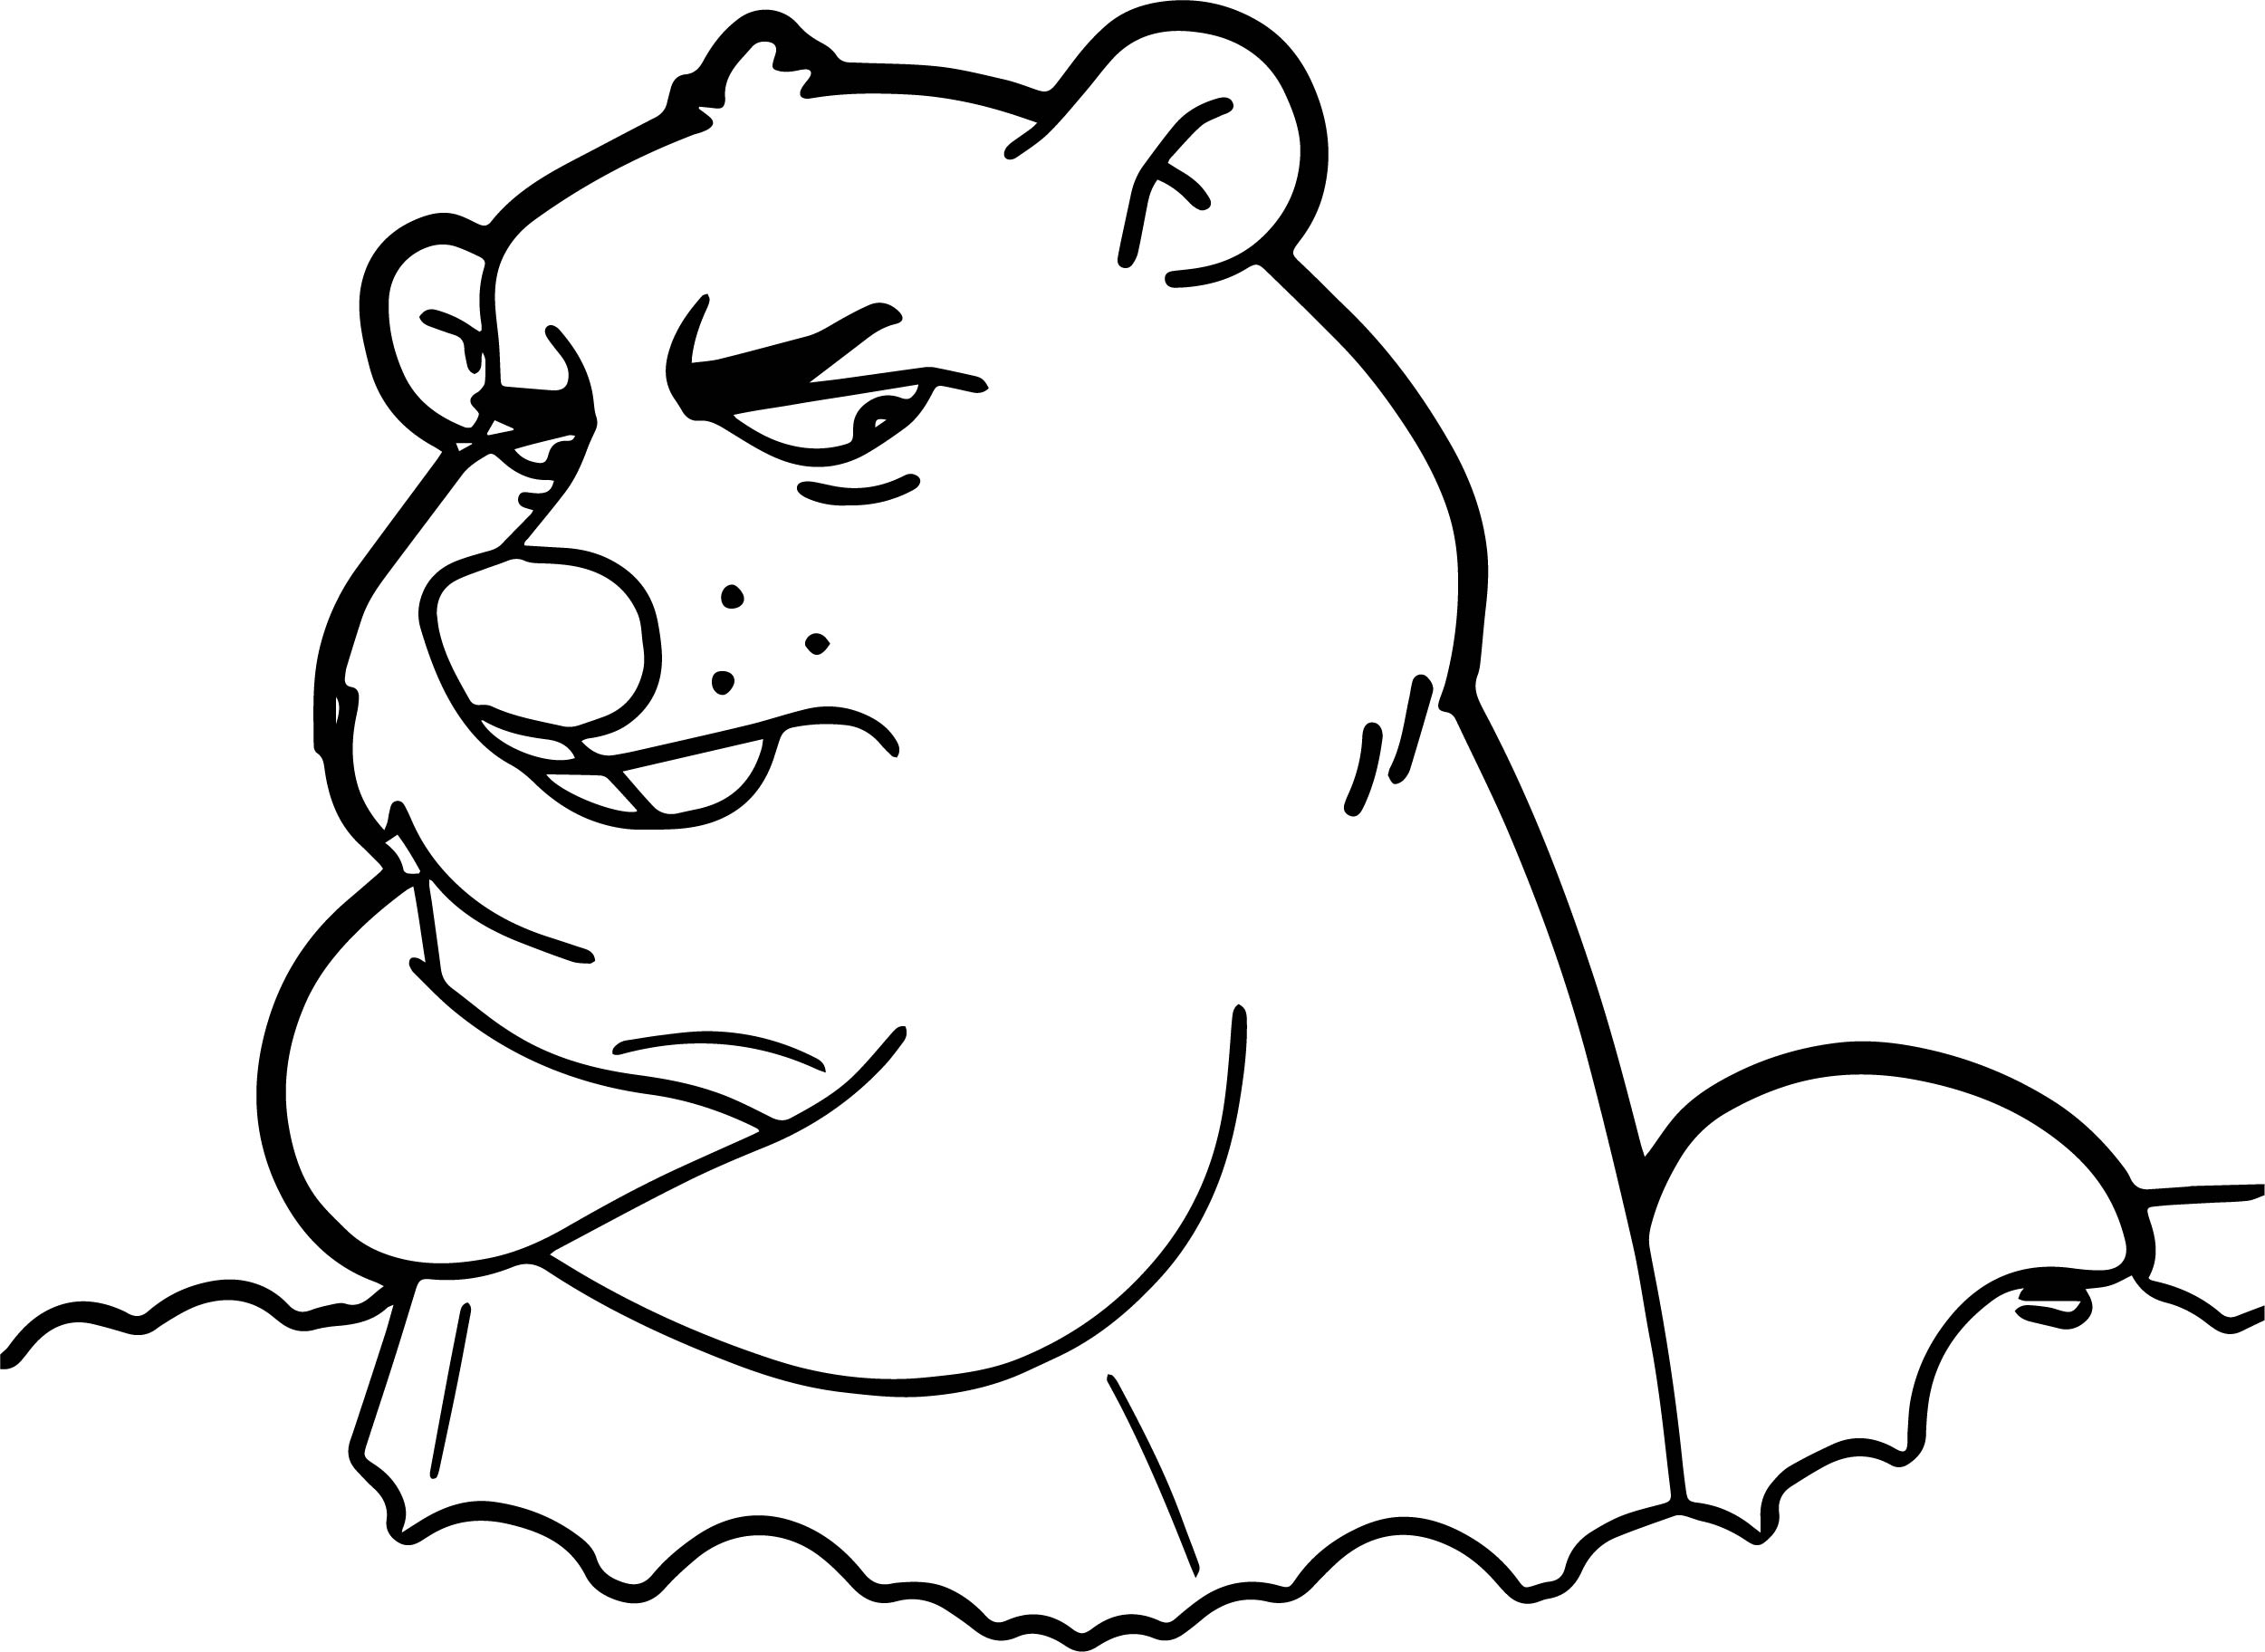 Cartoon Groundhog Day Coloring Page Wecoloringpage